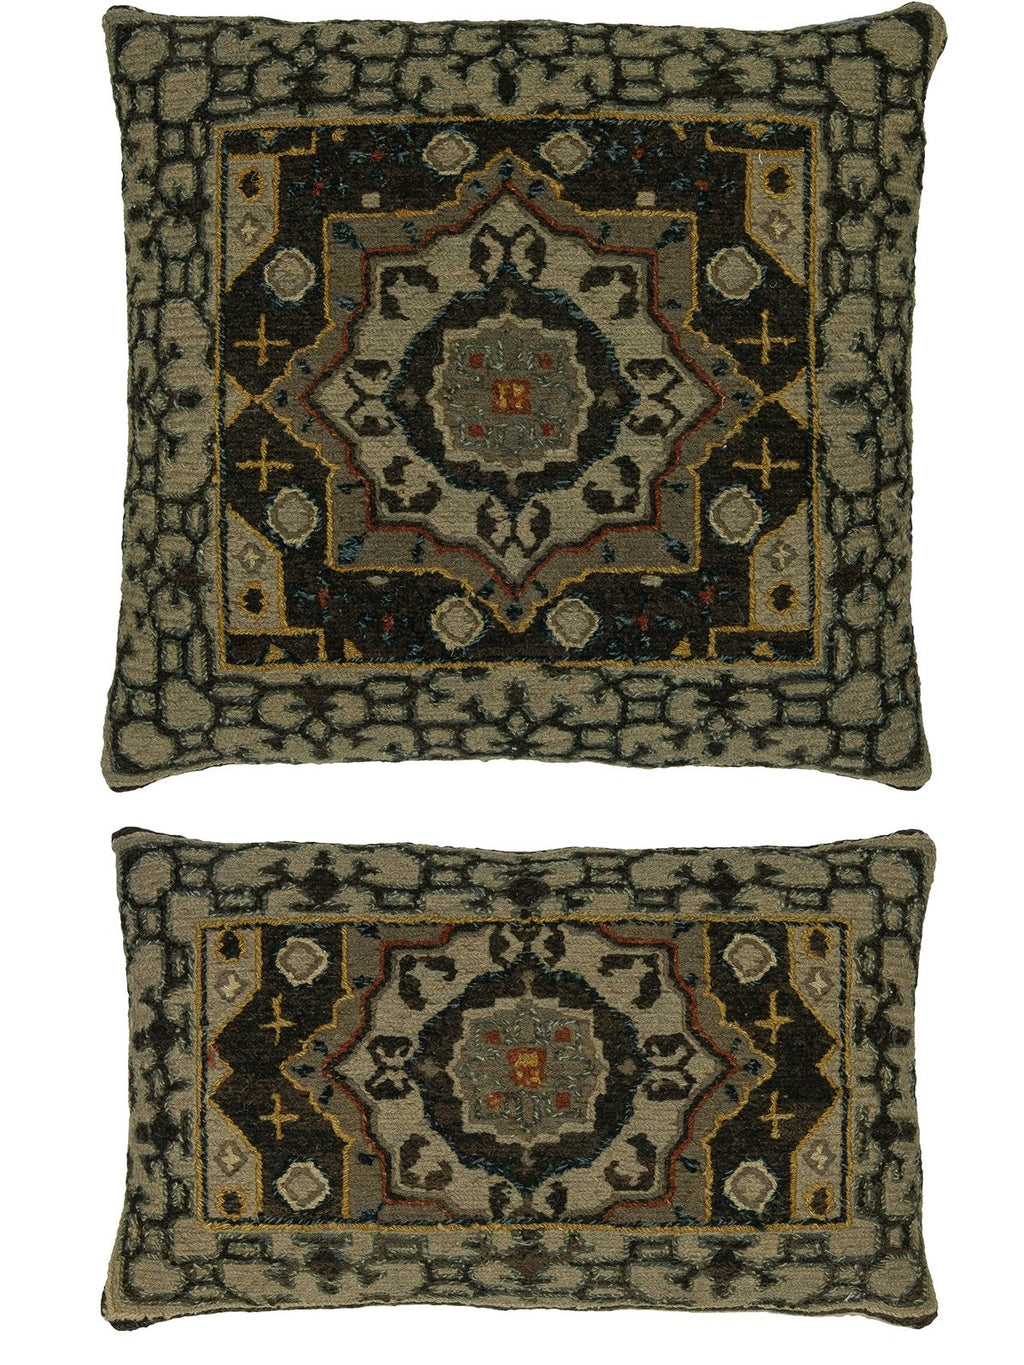 Pillow PL-273 - AllRugs